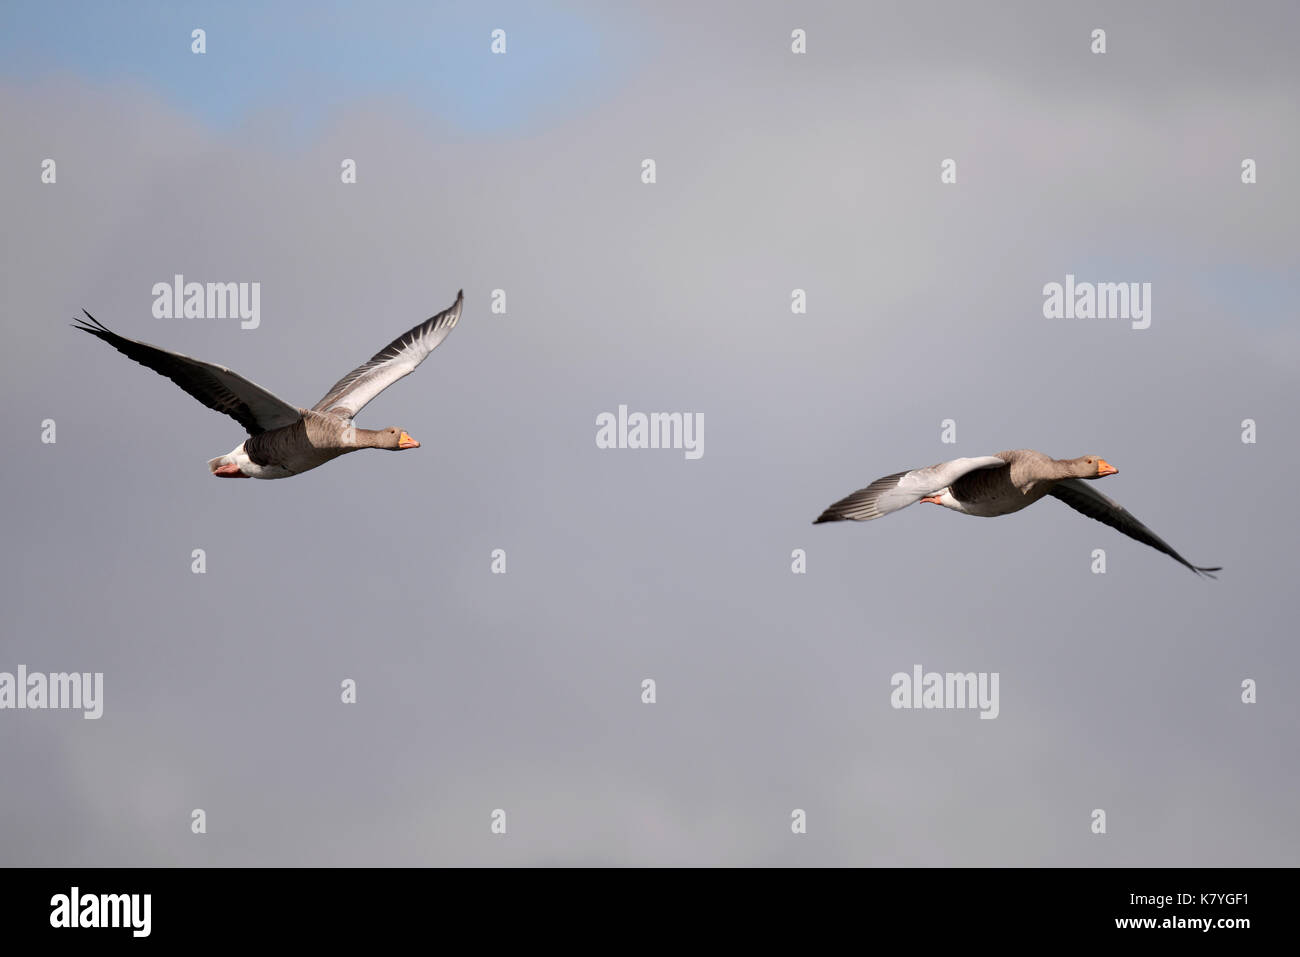 Greylag Geese Anser anser in the waterfowl family Anatidae flying over The Serpentine in Hyde Park, London. Pair. - Stock Image